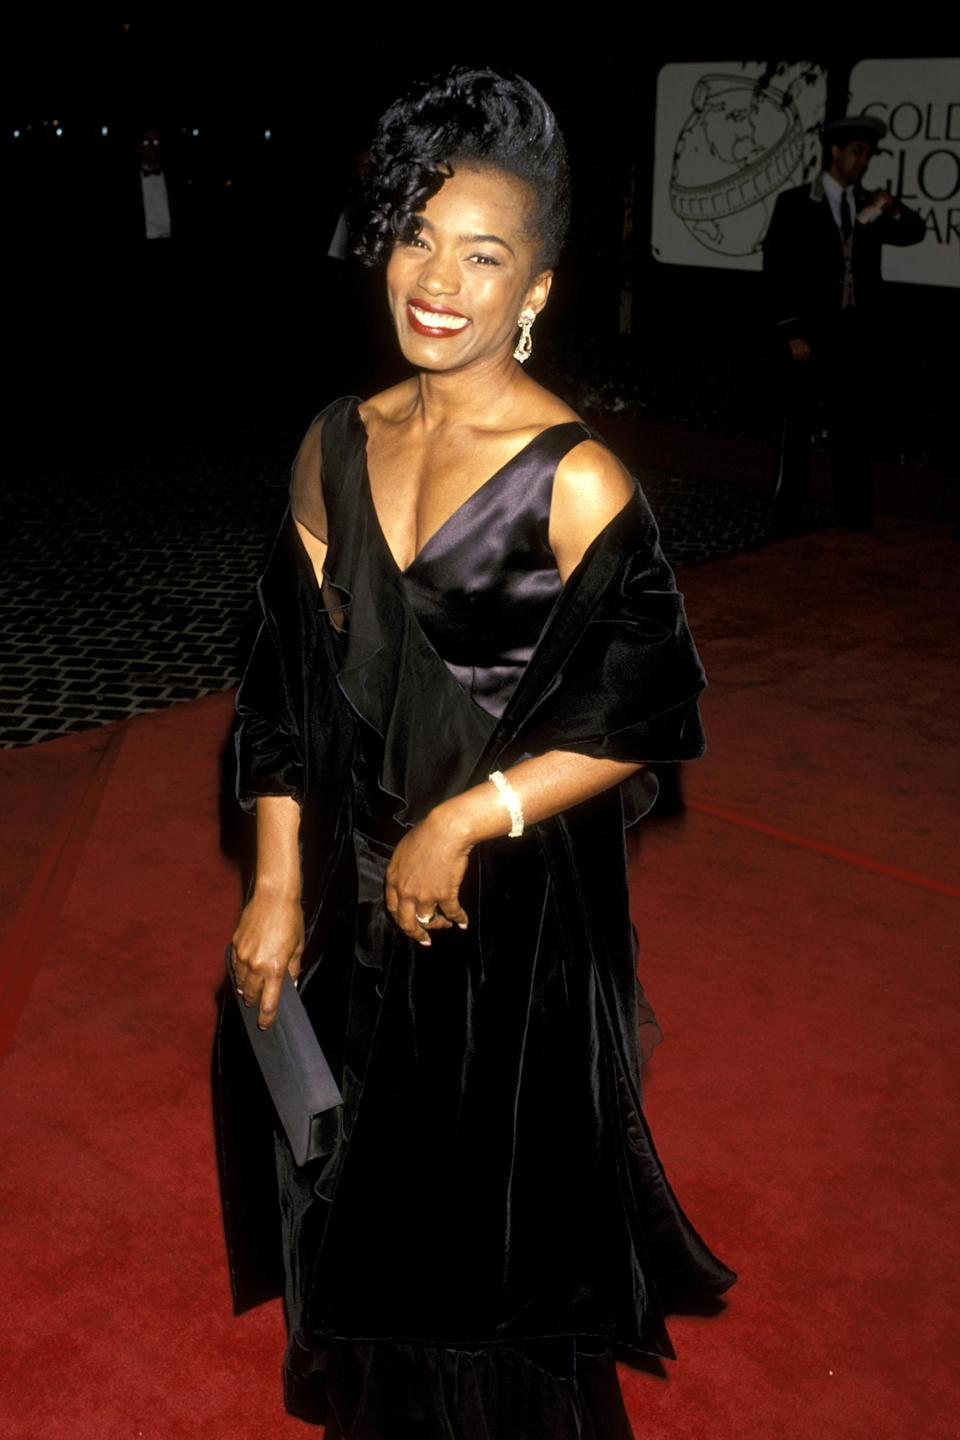 """<strong><h2>1994</h2></strong><br>Is it just us, or is Angela Bassett absolutely glowing in this all-black Golden Globes ensemble?<br><br><em>Angela Bassett in a black dress.</em><span class=""""copyright"""">Photo: Ron Galella/WireImage.</span>"""